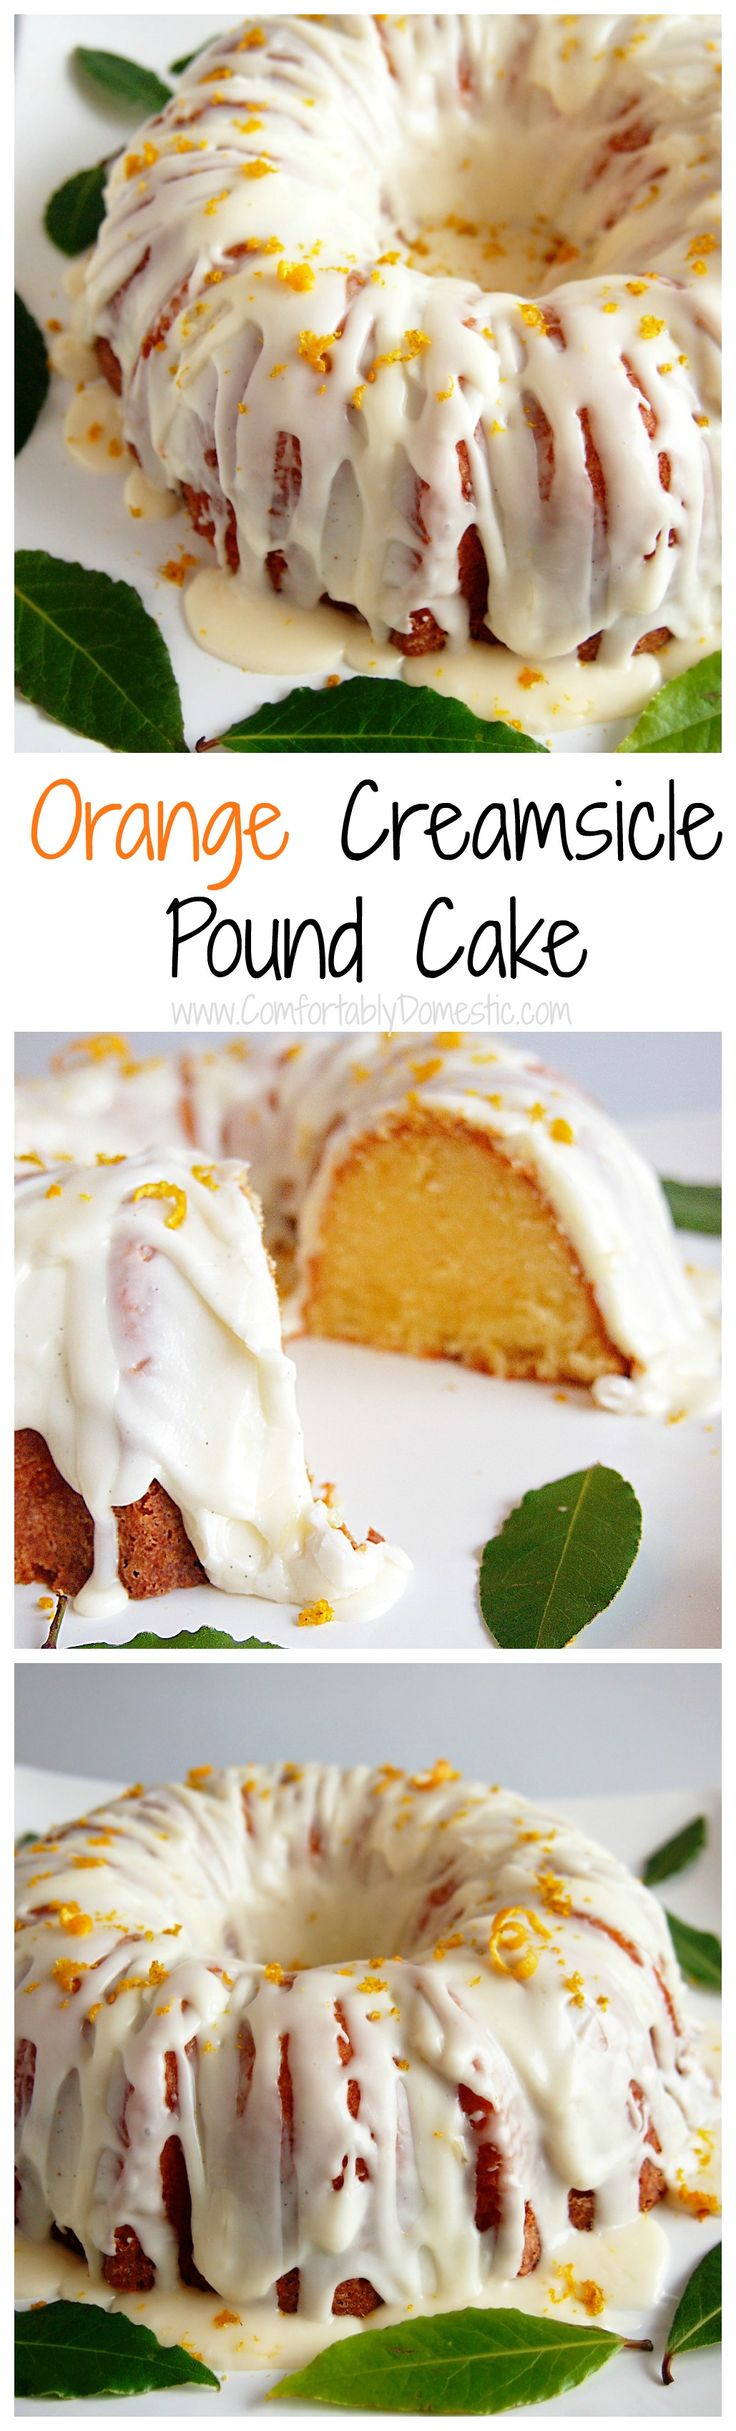 Orange Creamsicle Pound Cake marries zesty orange pound cake with creamy vanilla icing for a taste as refreshing as the nostalgic frozen treat. via @comfortdomestic